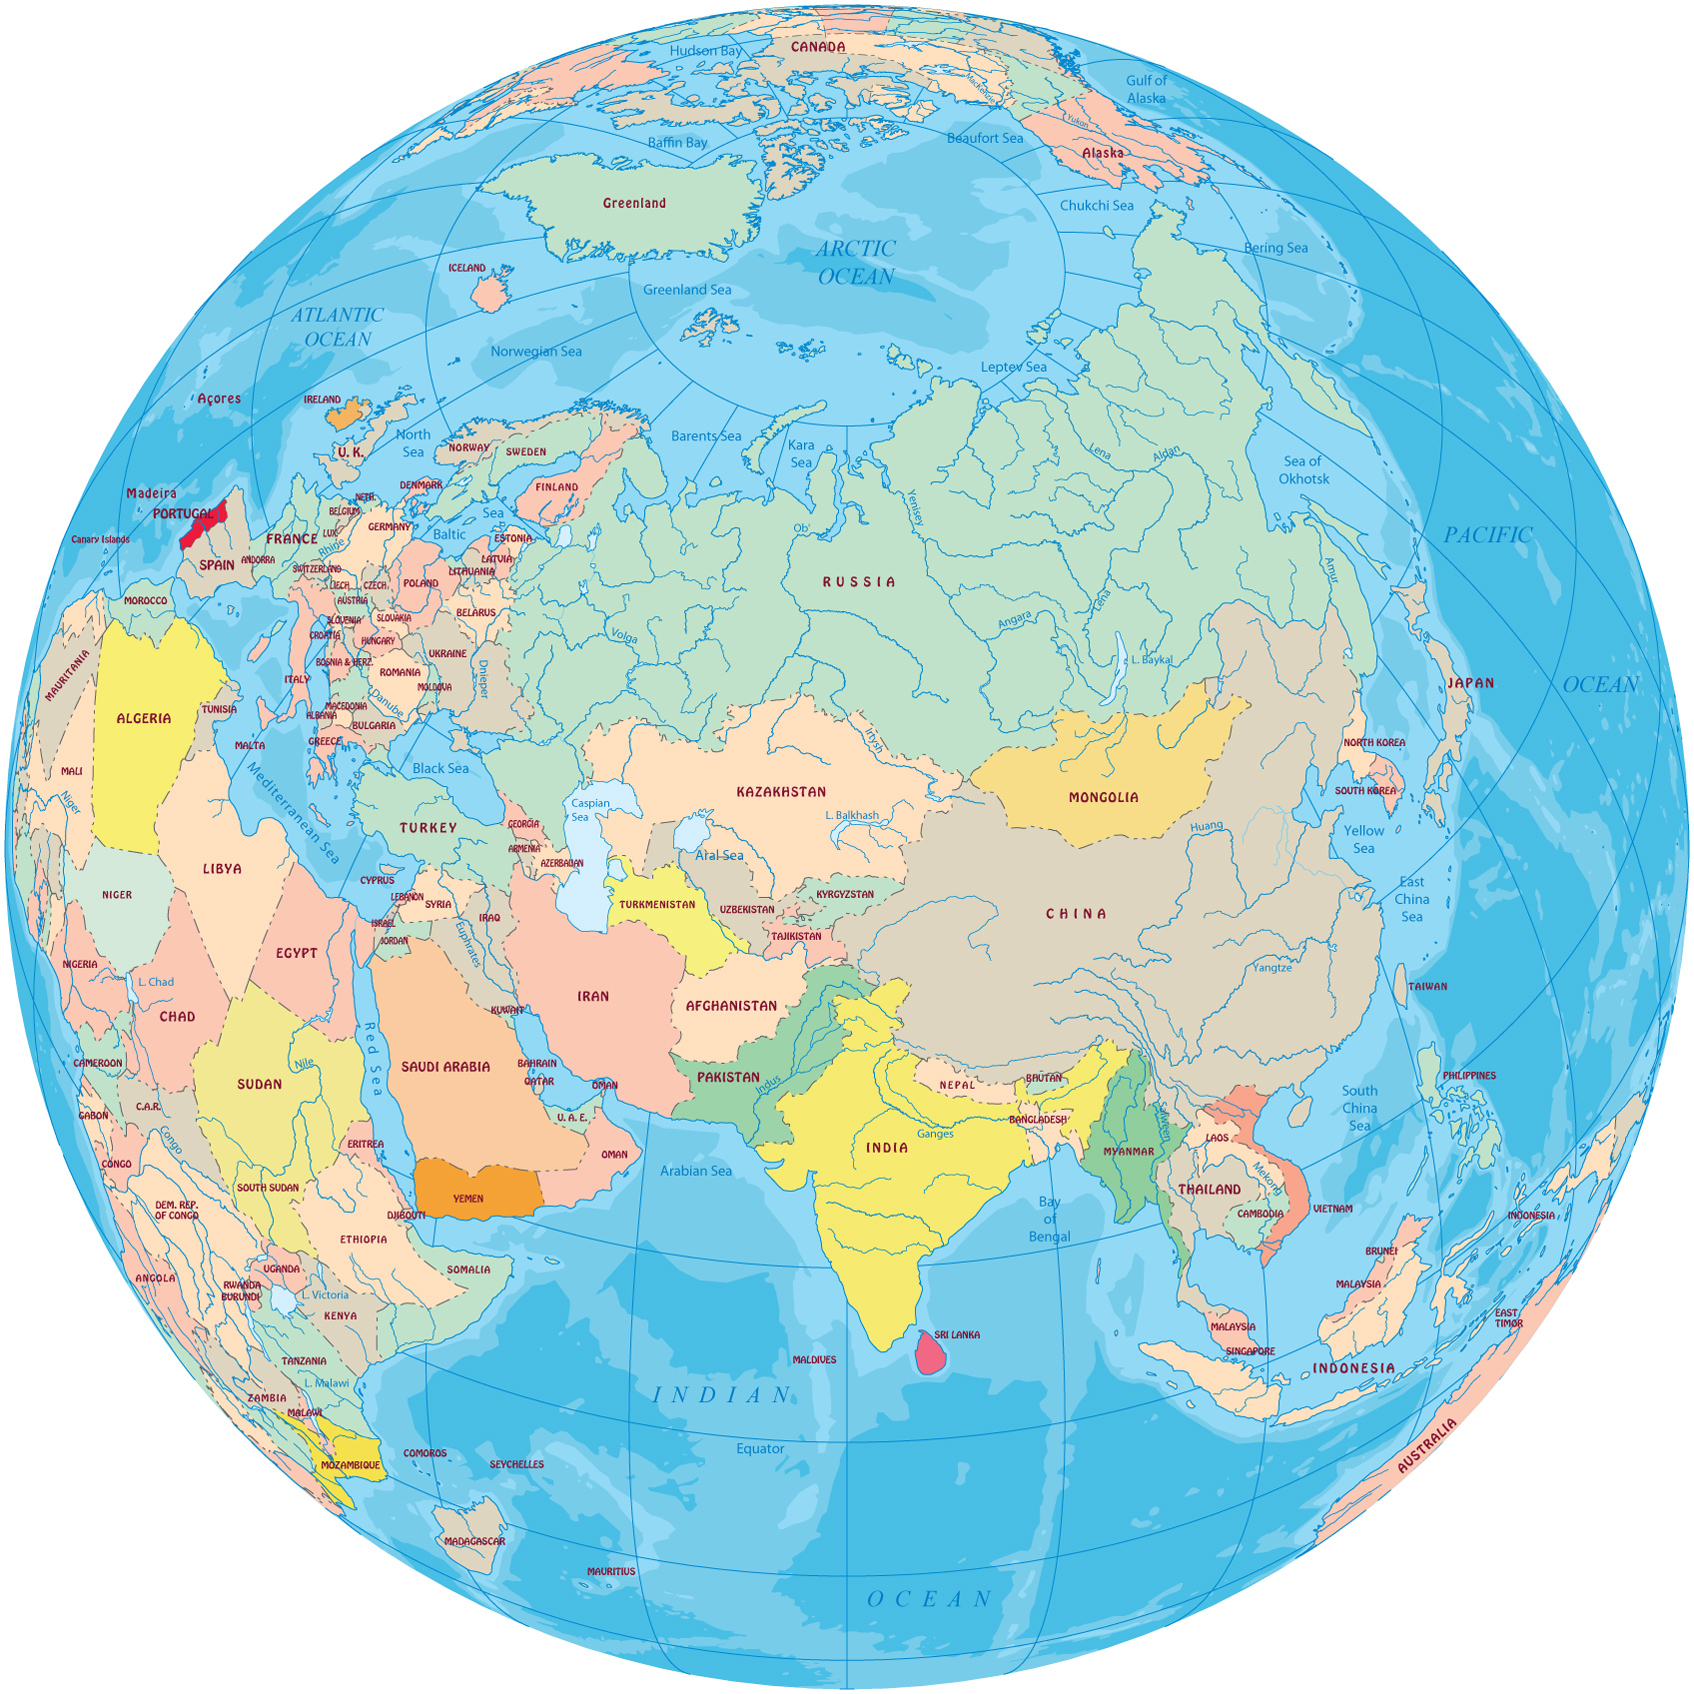 A Political Map Of The World.Asia Political Map